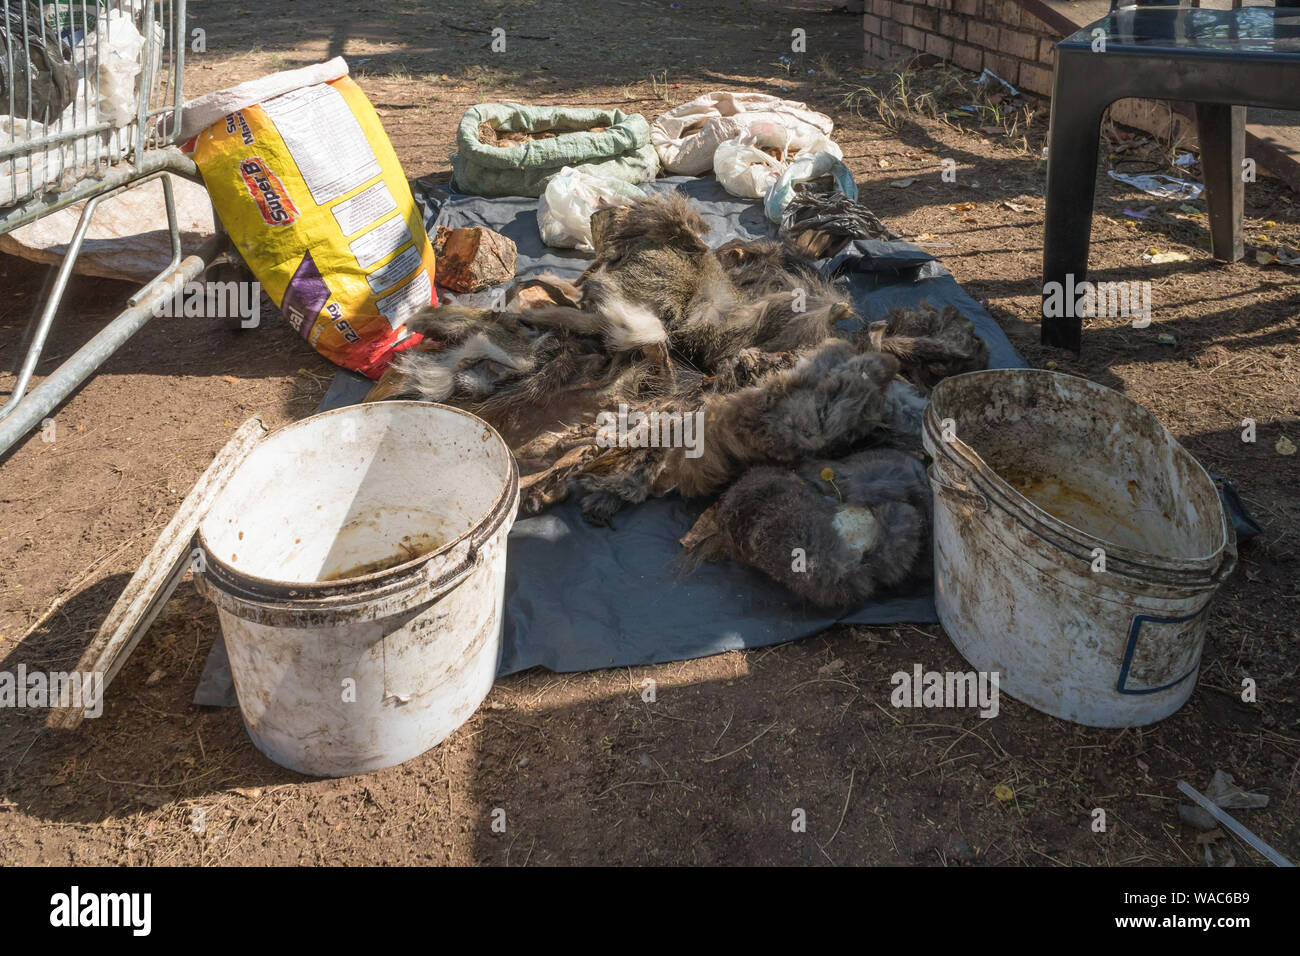 African muti or muthi which is traditional medicine in Southern Africa on display at a street vendor stall in Hazyview, Mpumalanga, South Africa Stock Photo